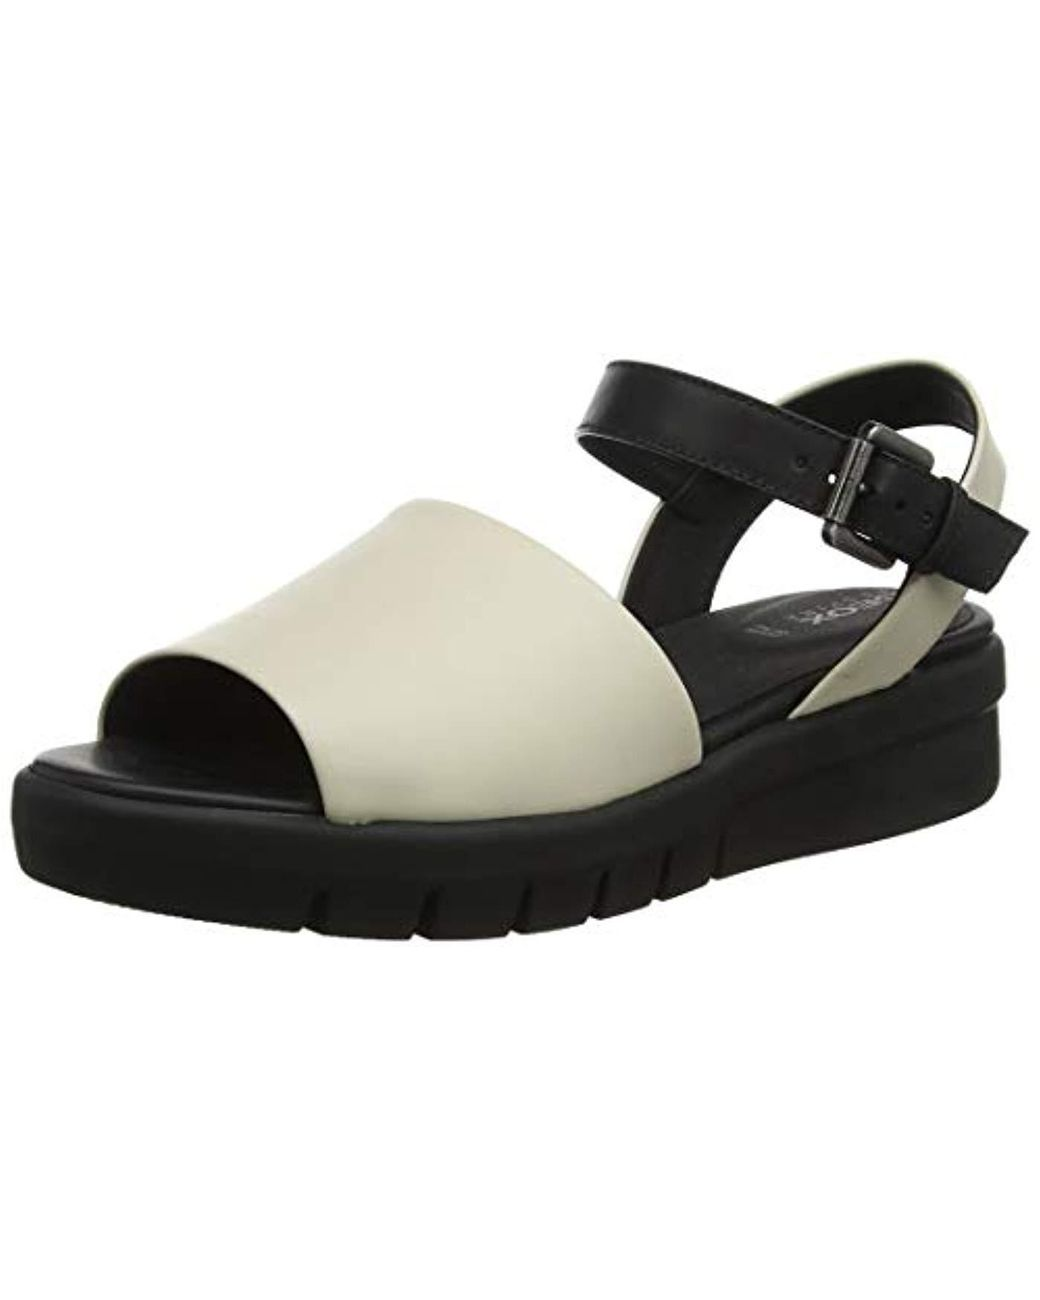 Geox D Wimbley A Ankle Strap Sandals in Black Lyst